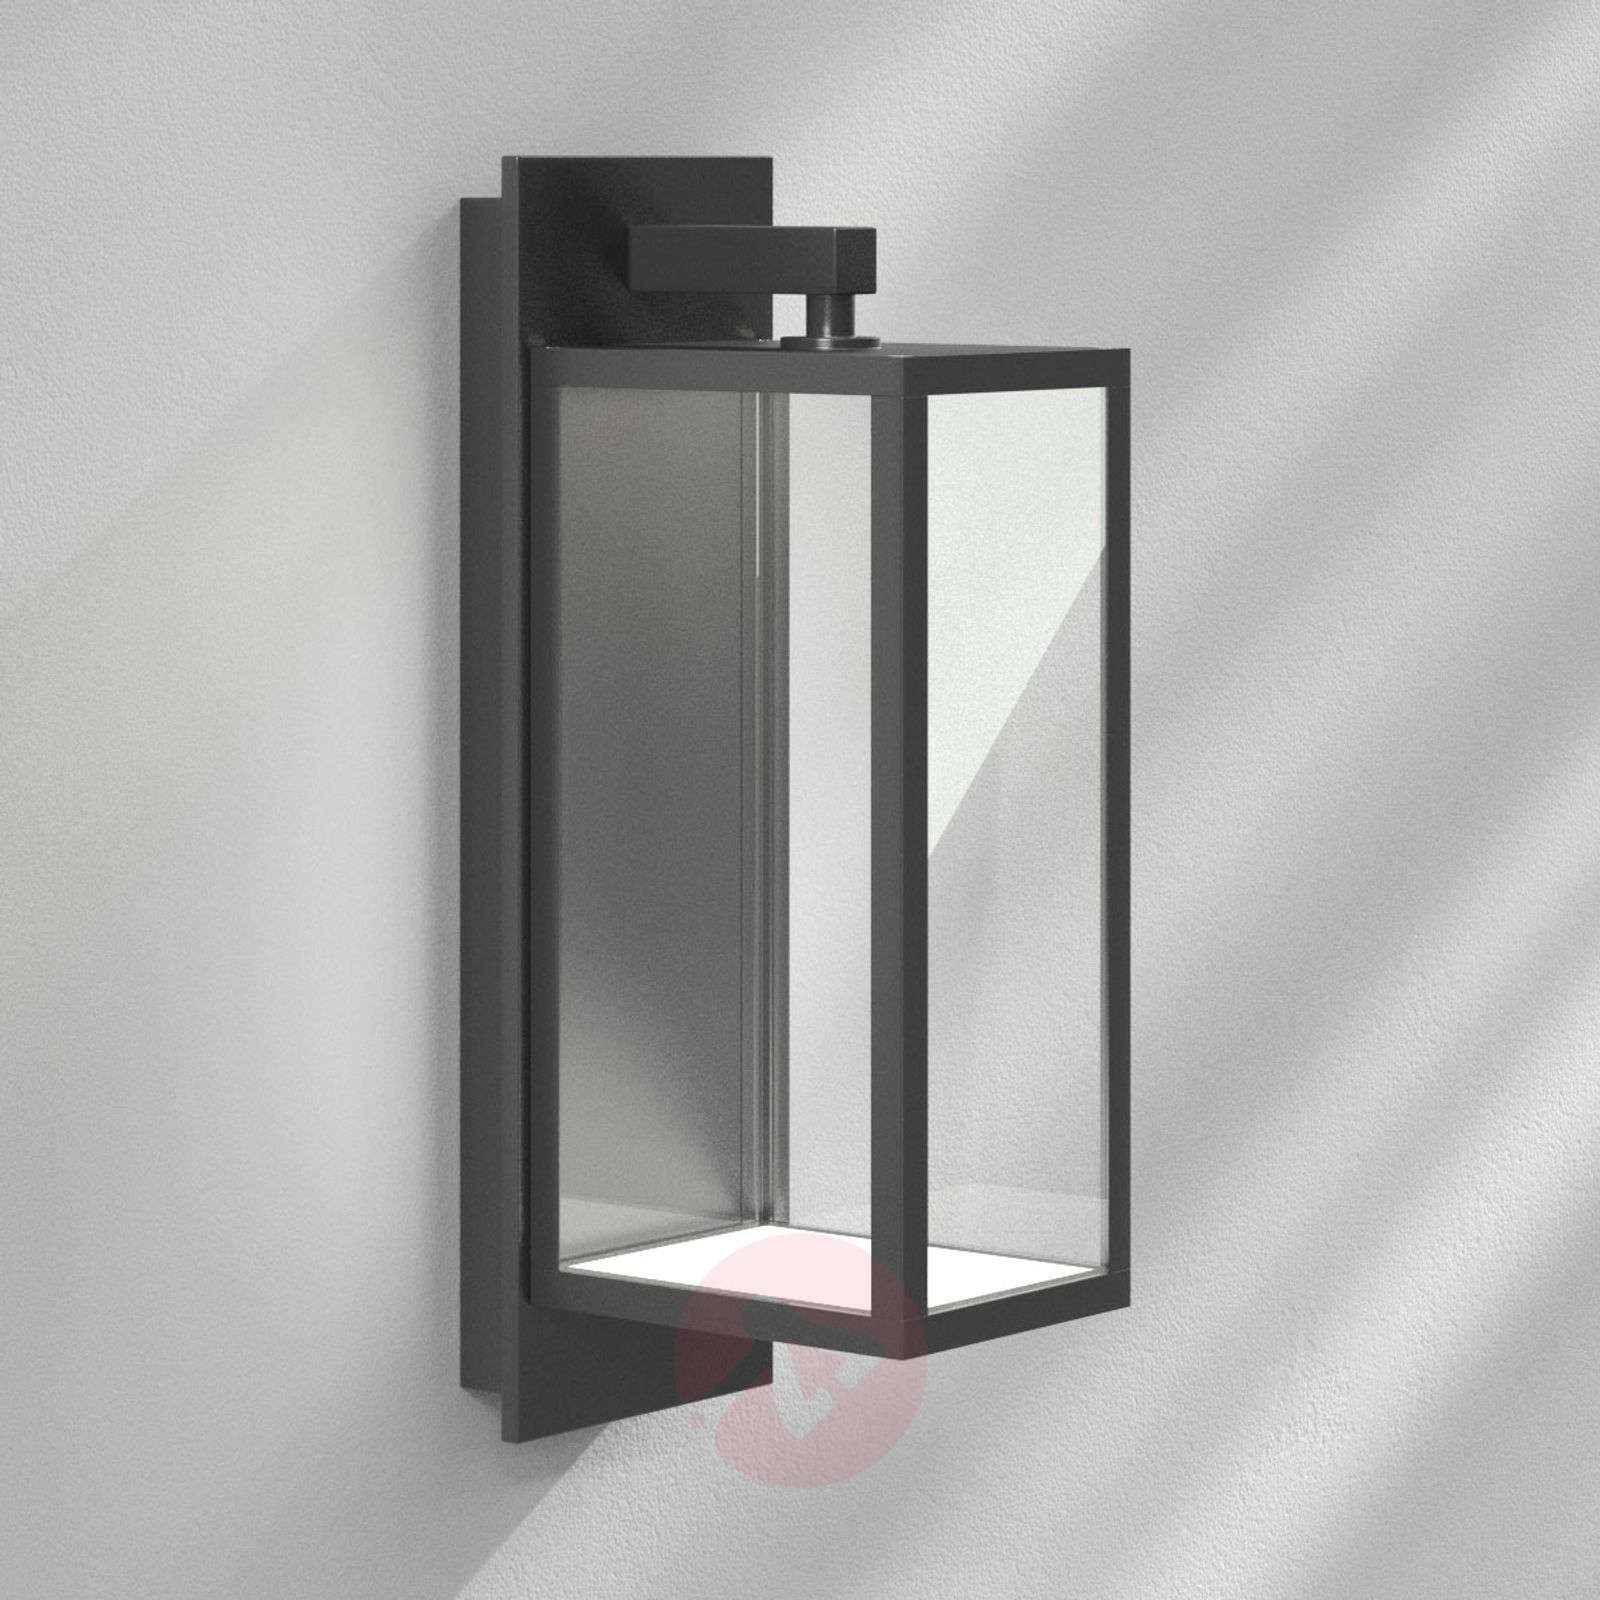 Kerala LED outdoor wall light with a lantern form-3507327-01